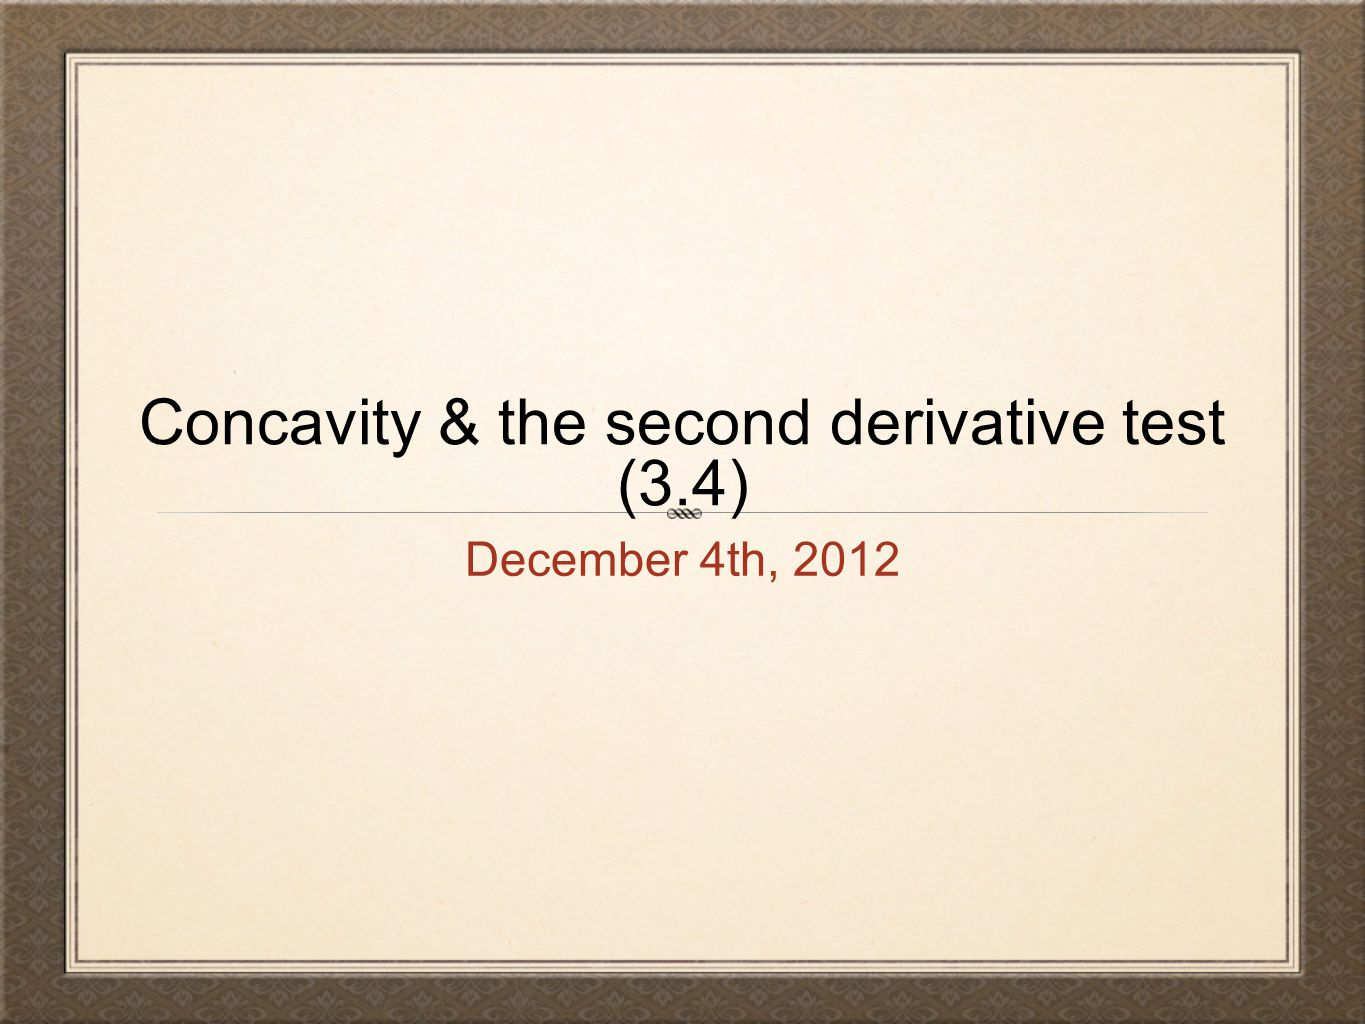 Concavity & the second derivative test (3.4) December 4th, 2012